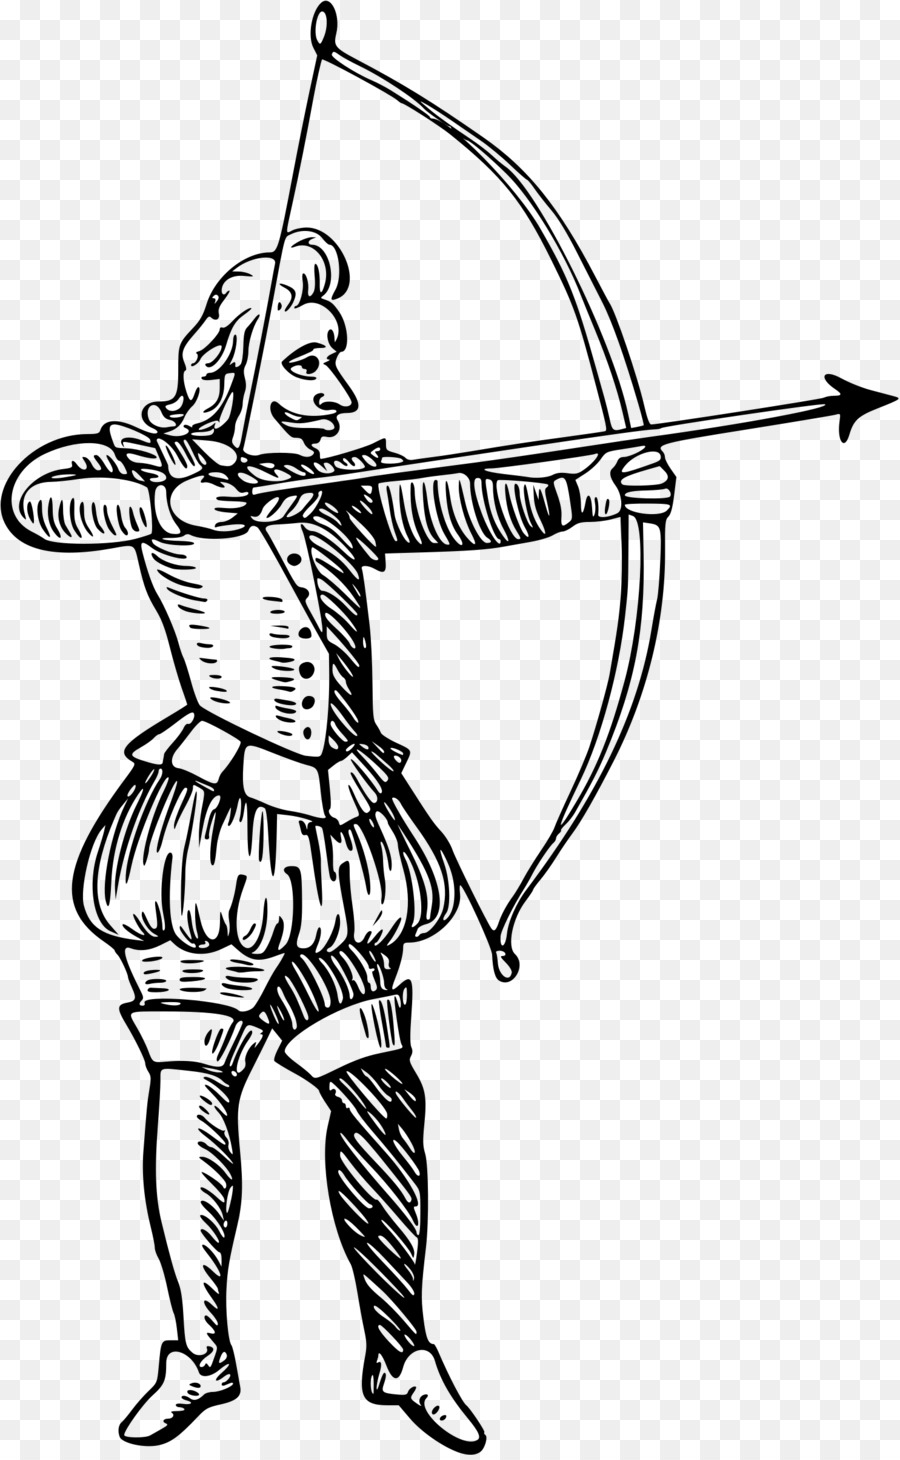 Archer clipart archery tag, Archer archery tag Transparent.